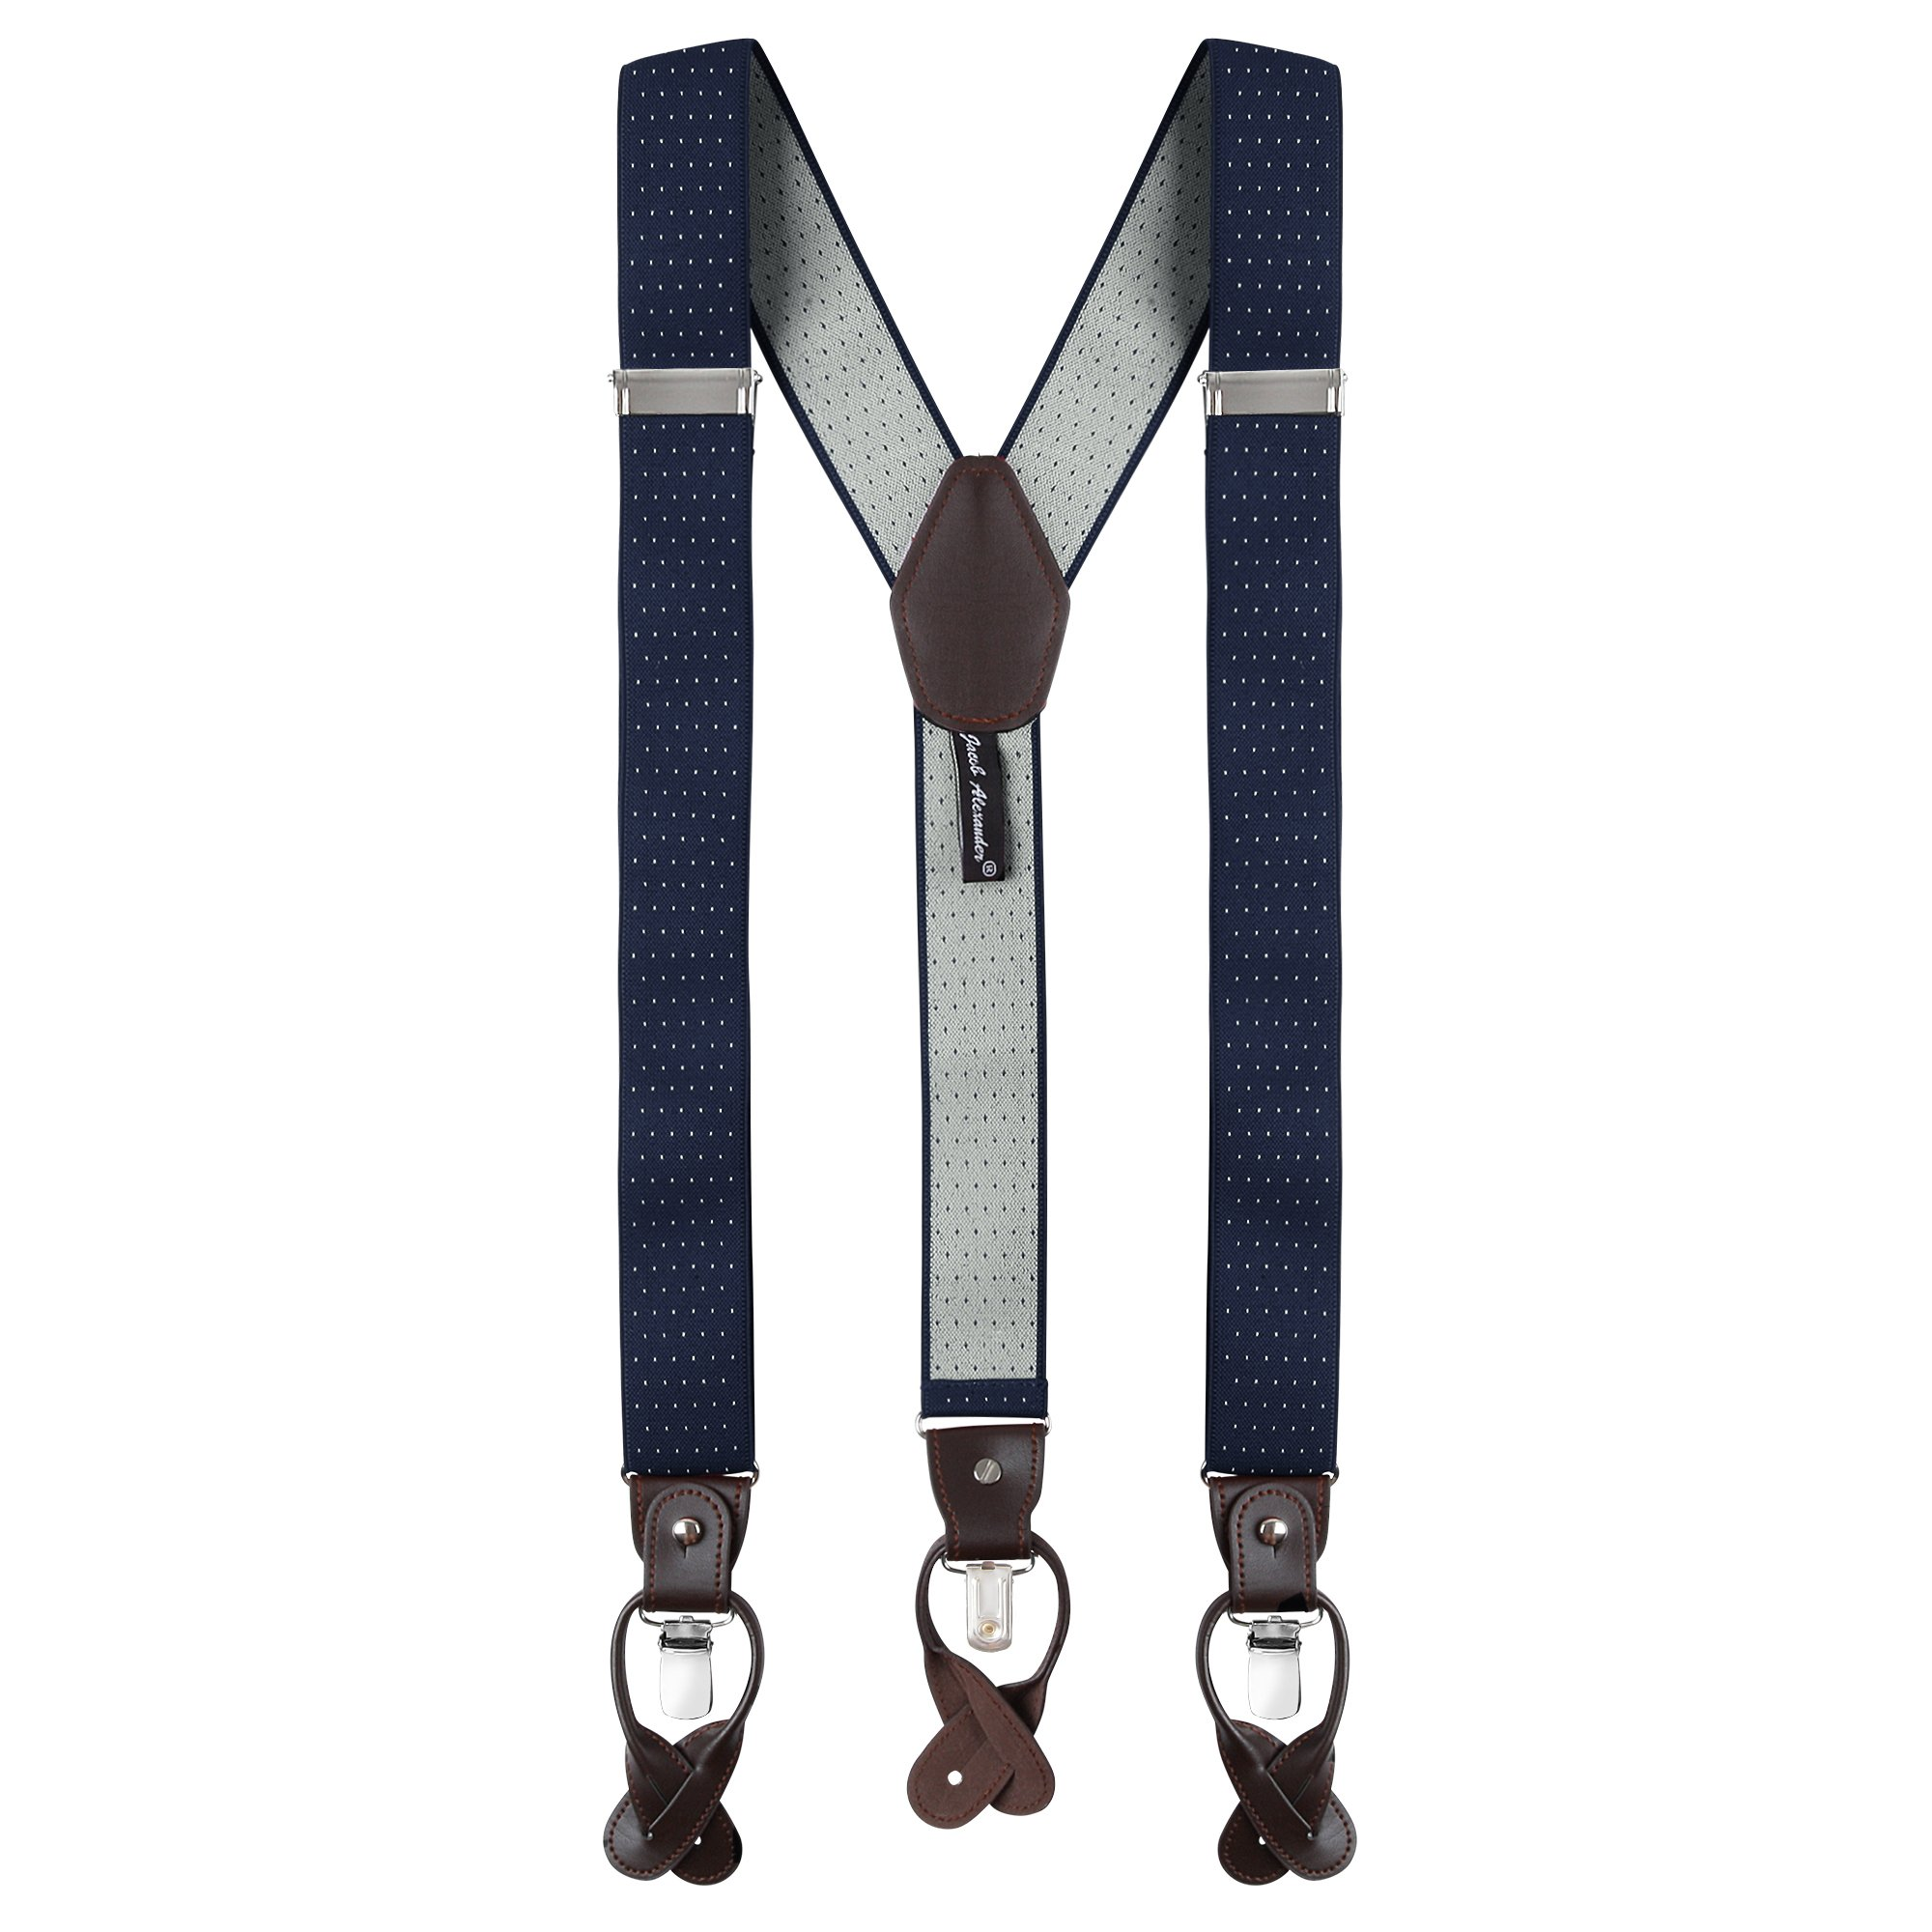 Jacob Alexander Men's Small Dots Y-Back Suspenders Braces Convertible Leather Ends Clips - Navy White